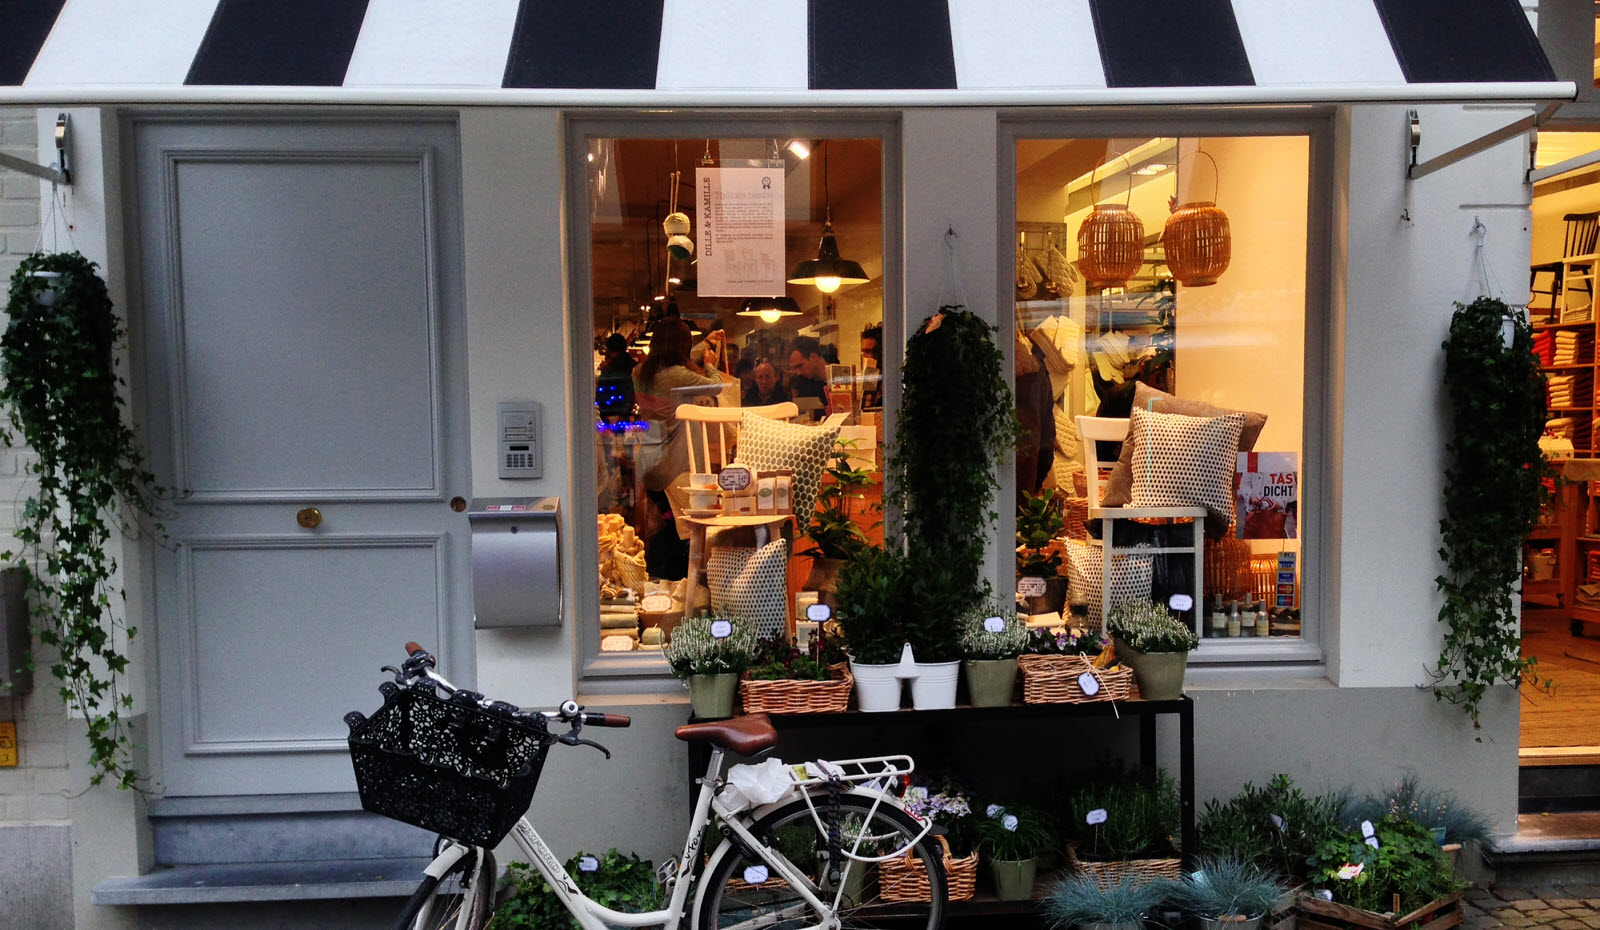 Shop  with bike in Brussels, Belgium